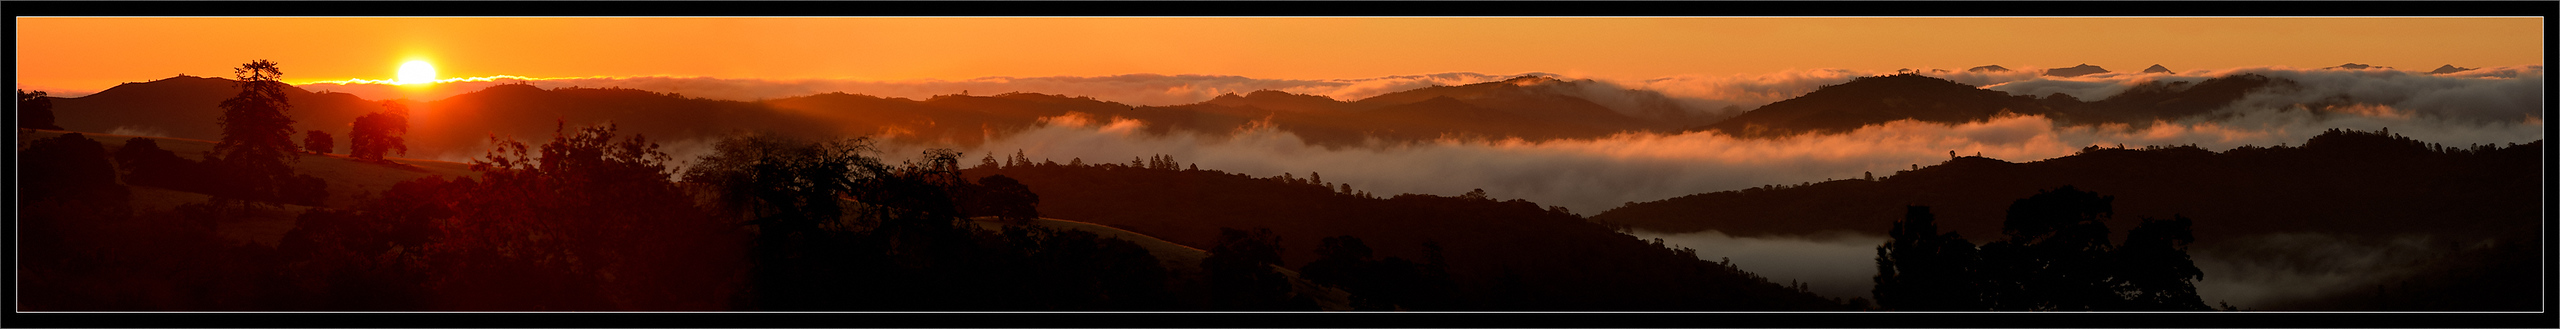 Sunrise & Clouds Over Blue Ridge